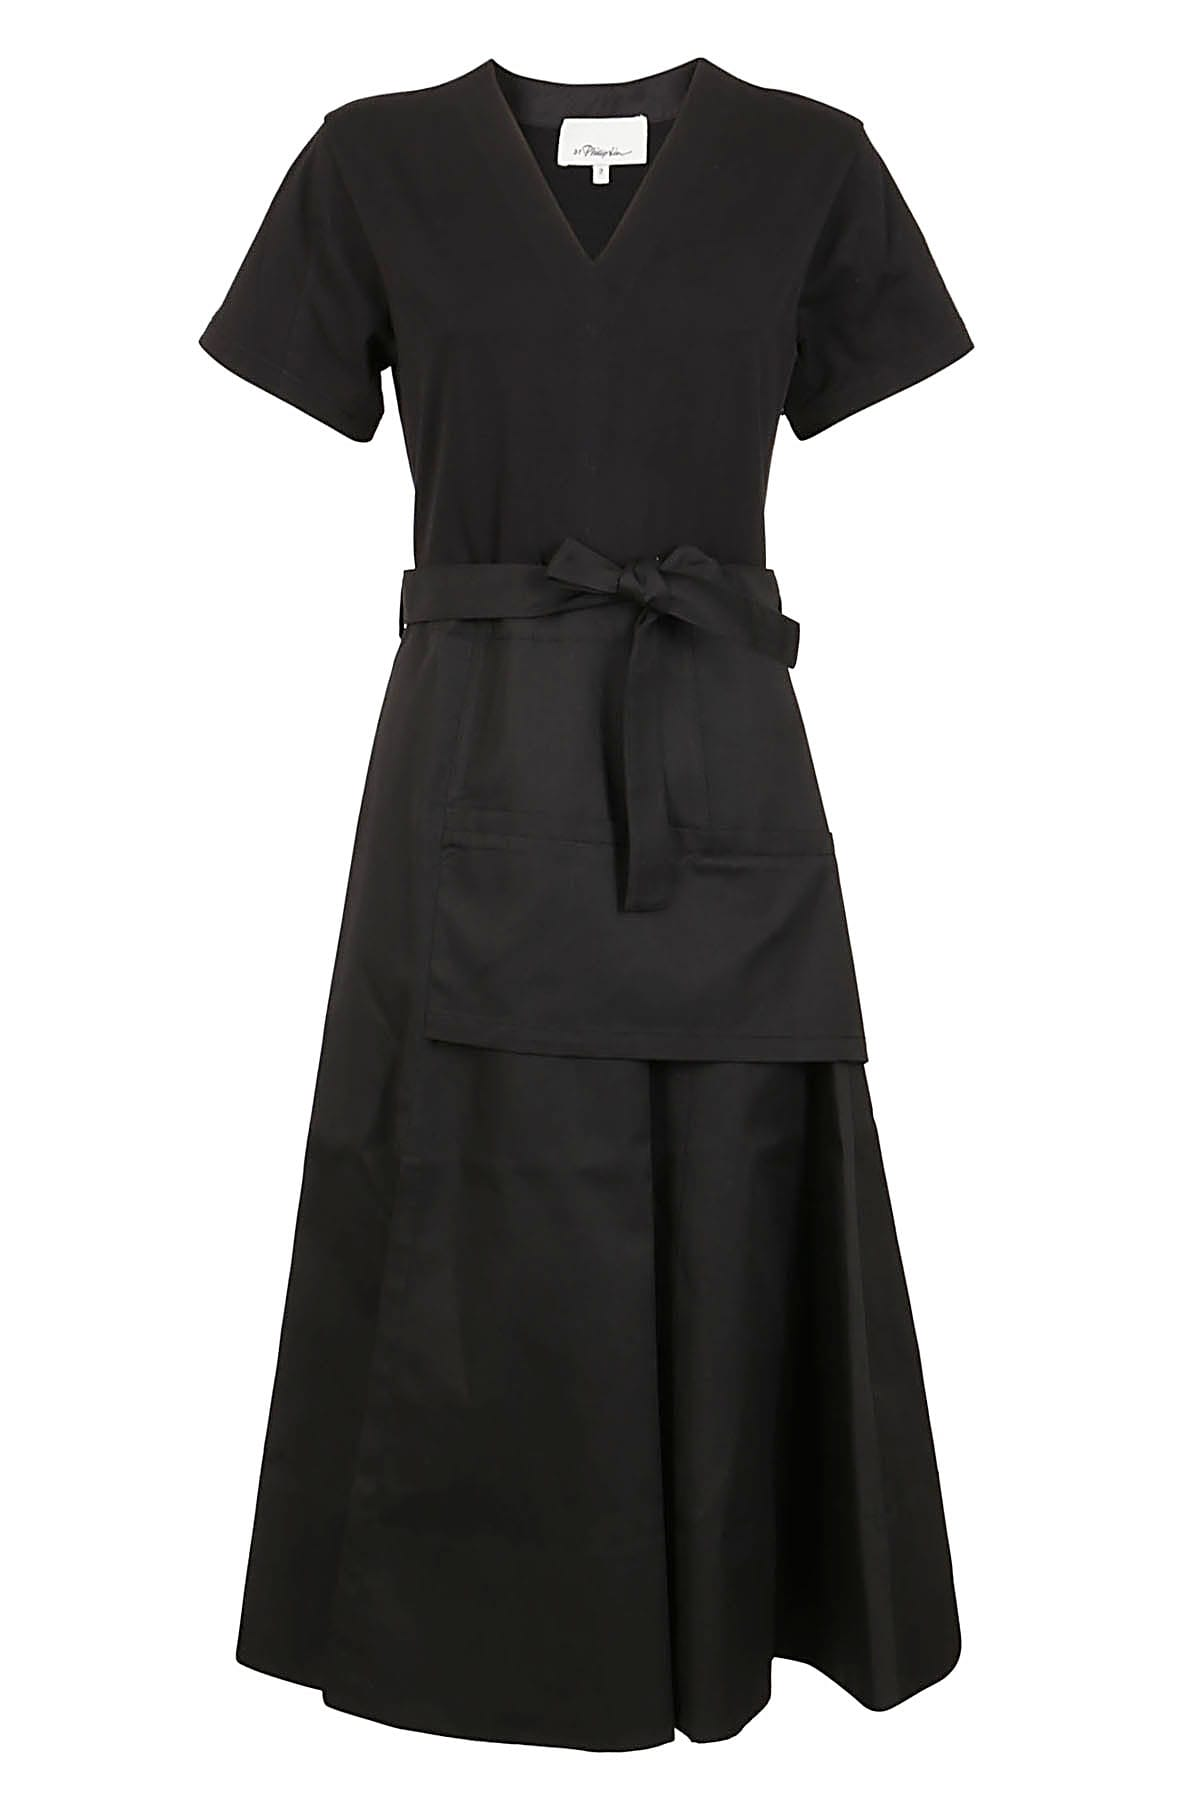 Buy 3.1 Phillip Lim Dress online, shop 3.1 Phillip Lim with free shipping